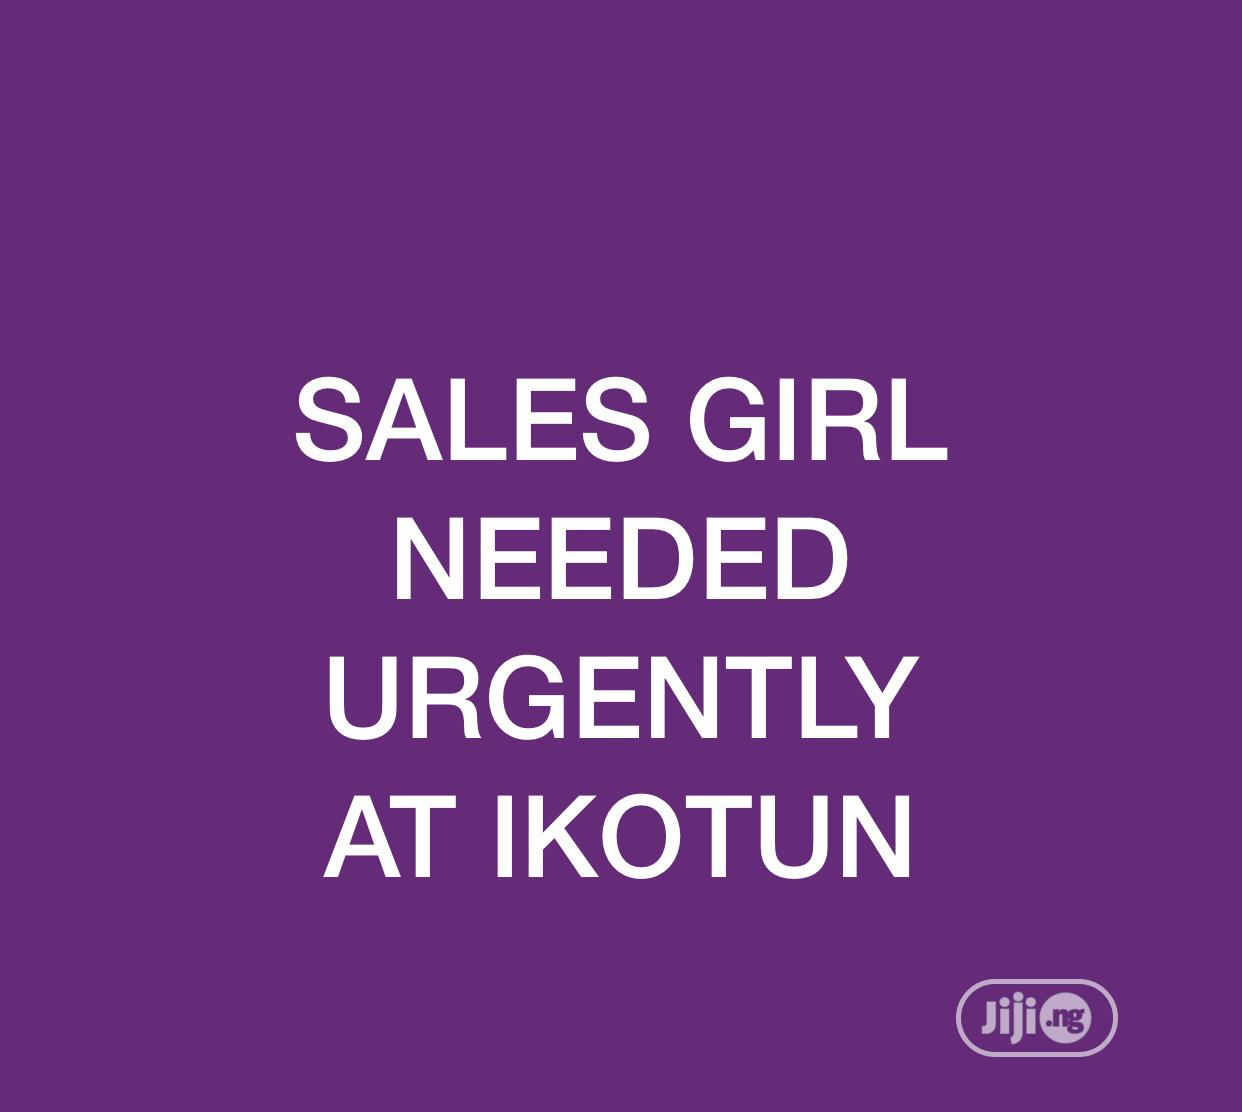 Sales Girl Needed Urgently